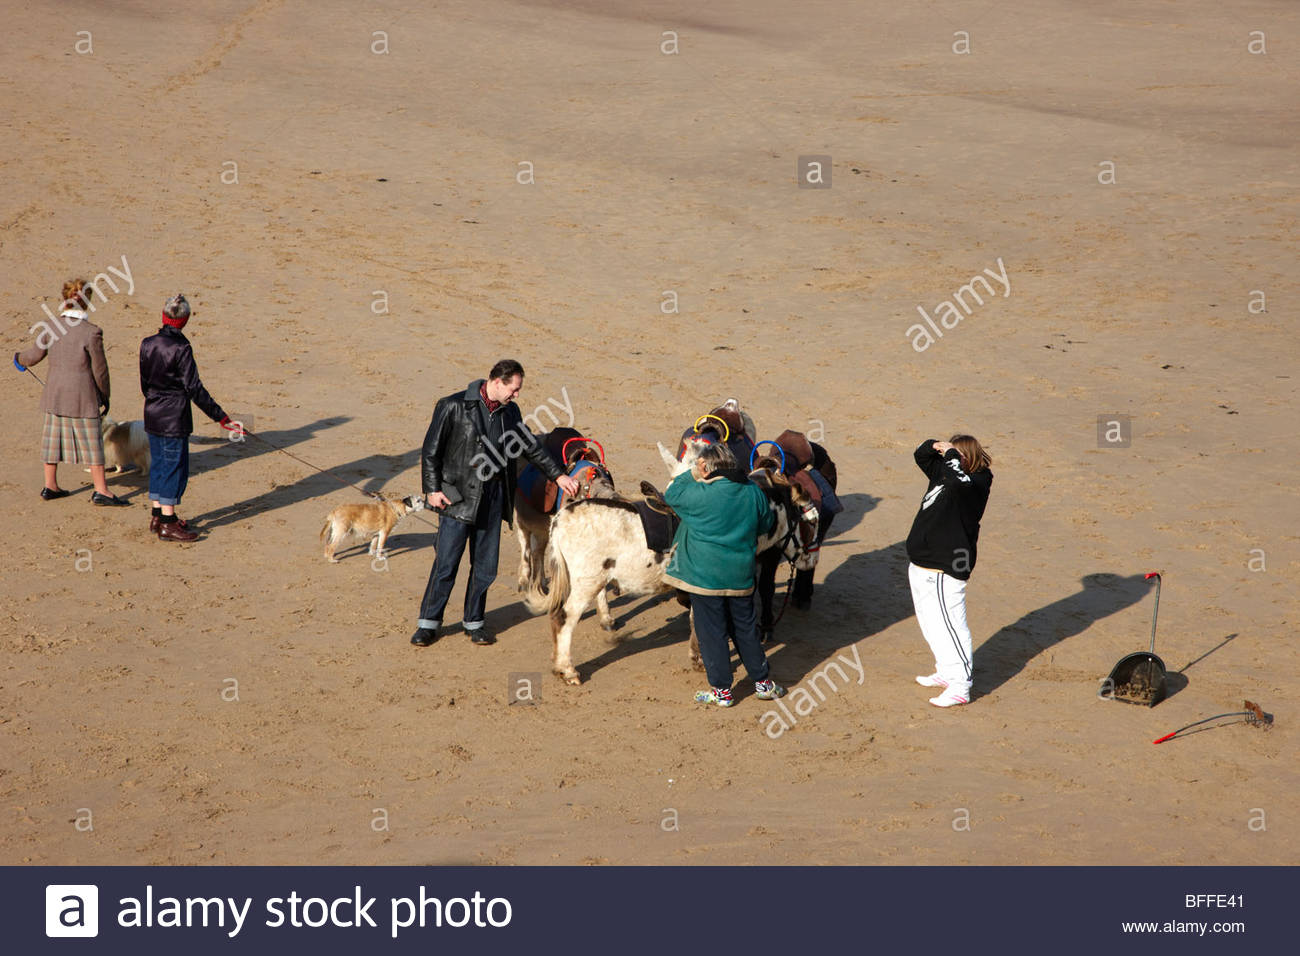 Whitby, Children's Donkey Rides on the Beach Stock Photo